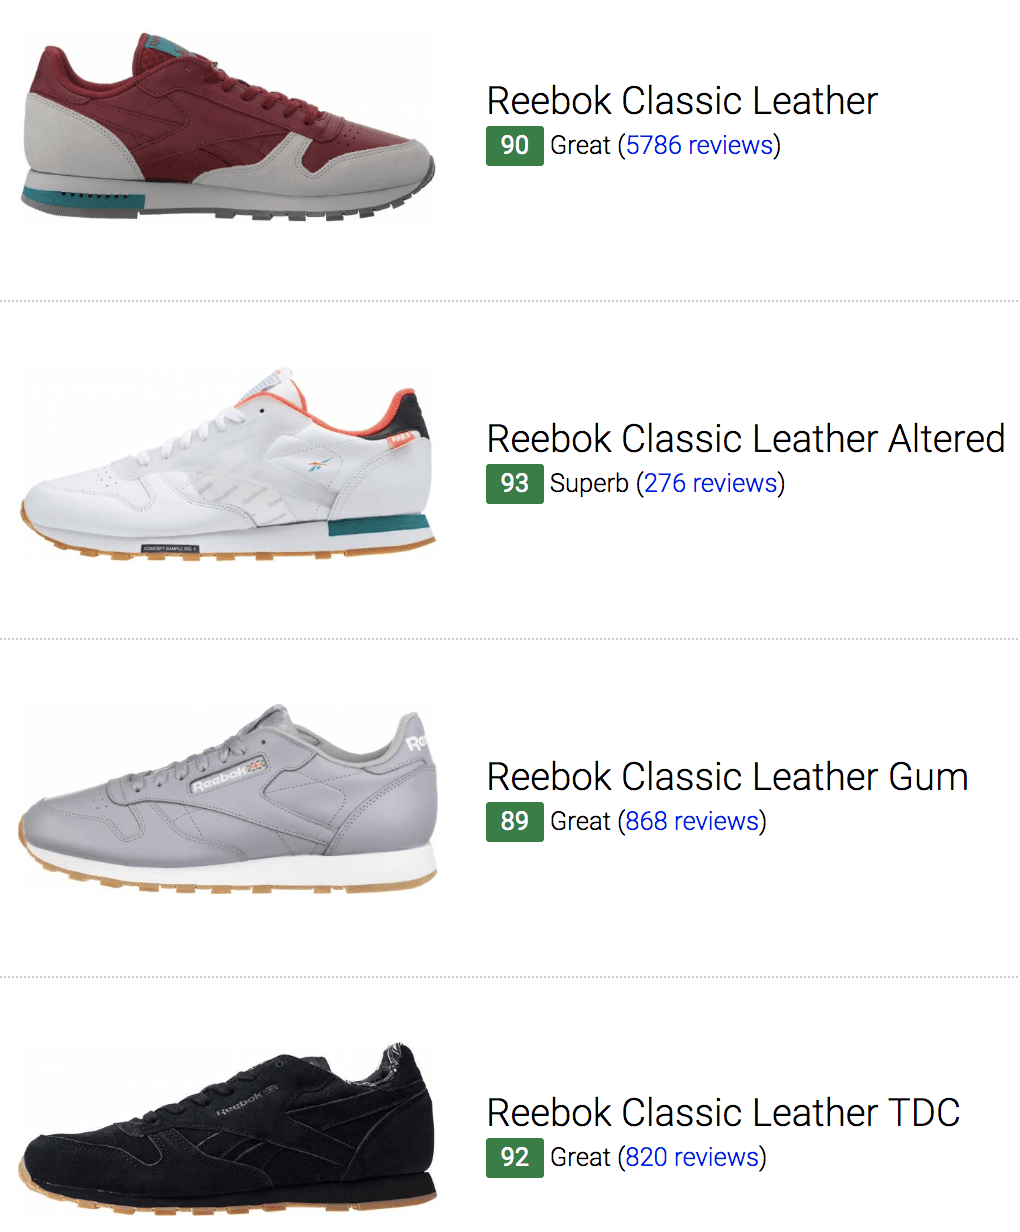 8e7424d1 52 Best Reebok Classic Leather Sneakers (August 2019) | RunRepeat